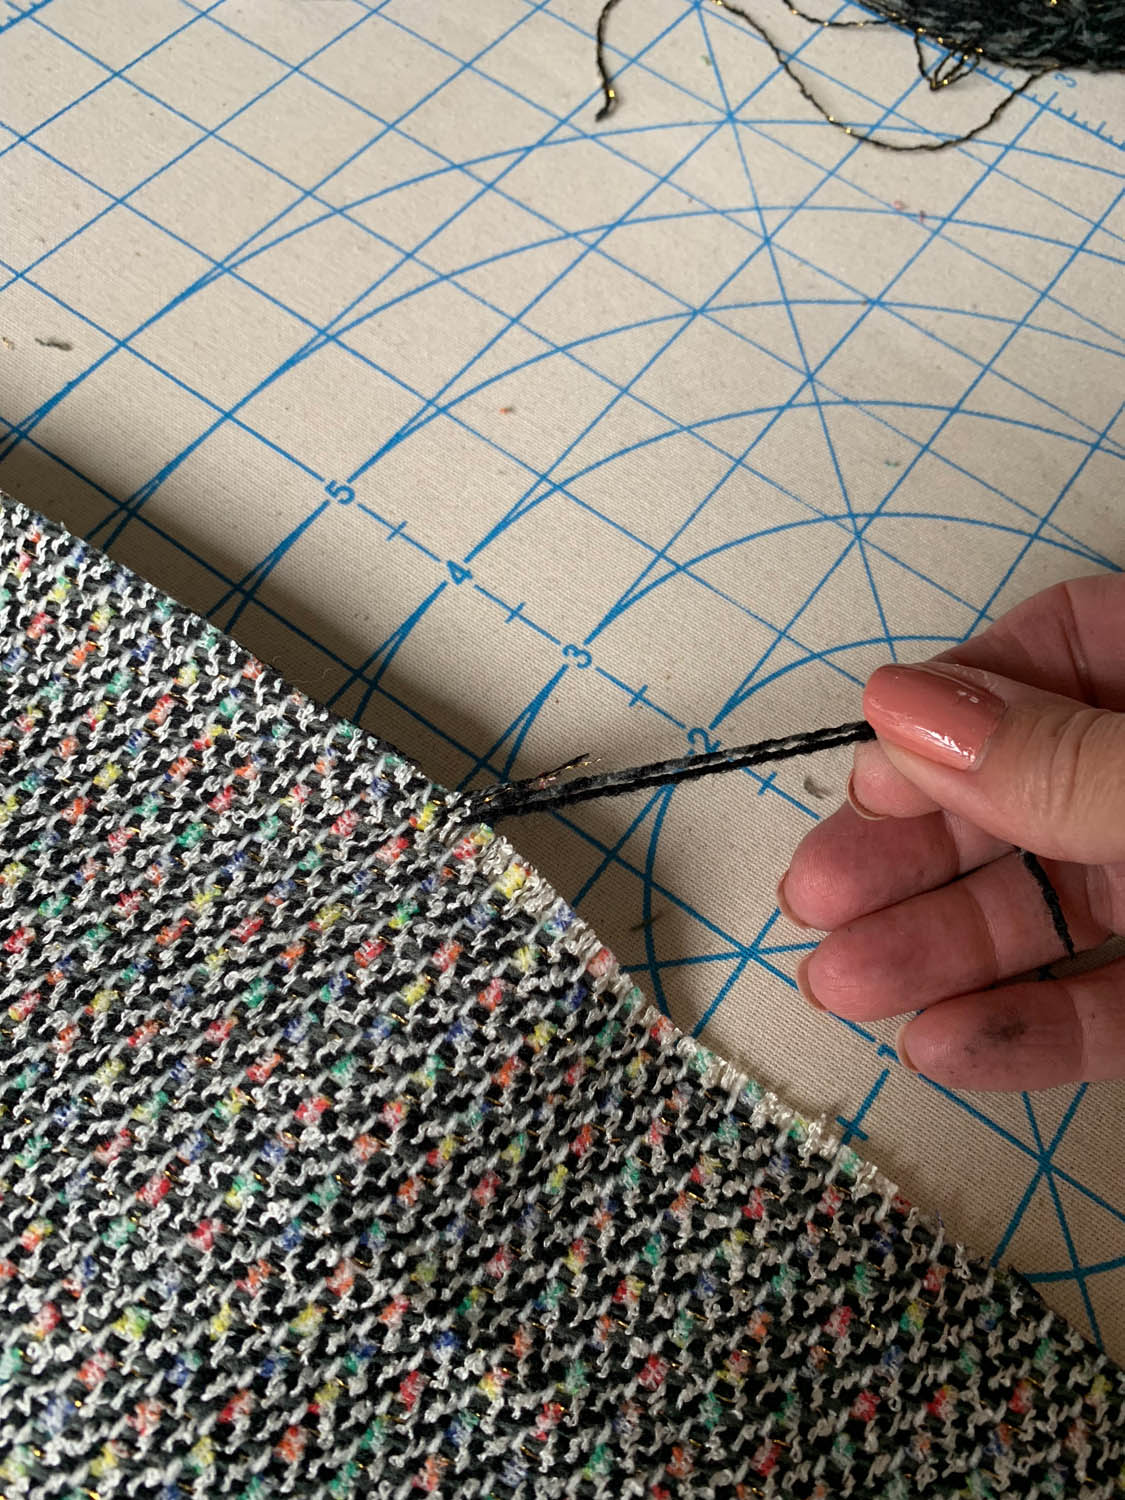 fingers pulling crosswise threads from upholstery fabric for fringe